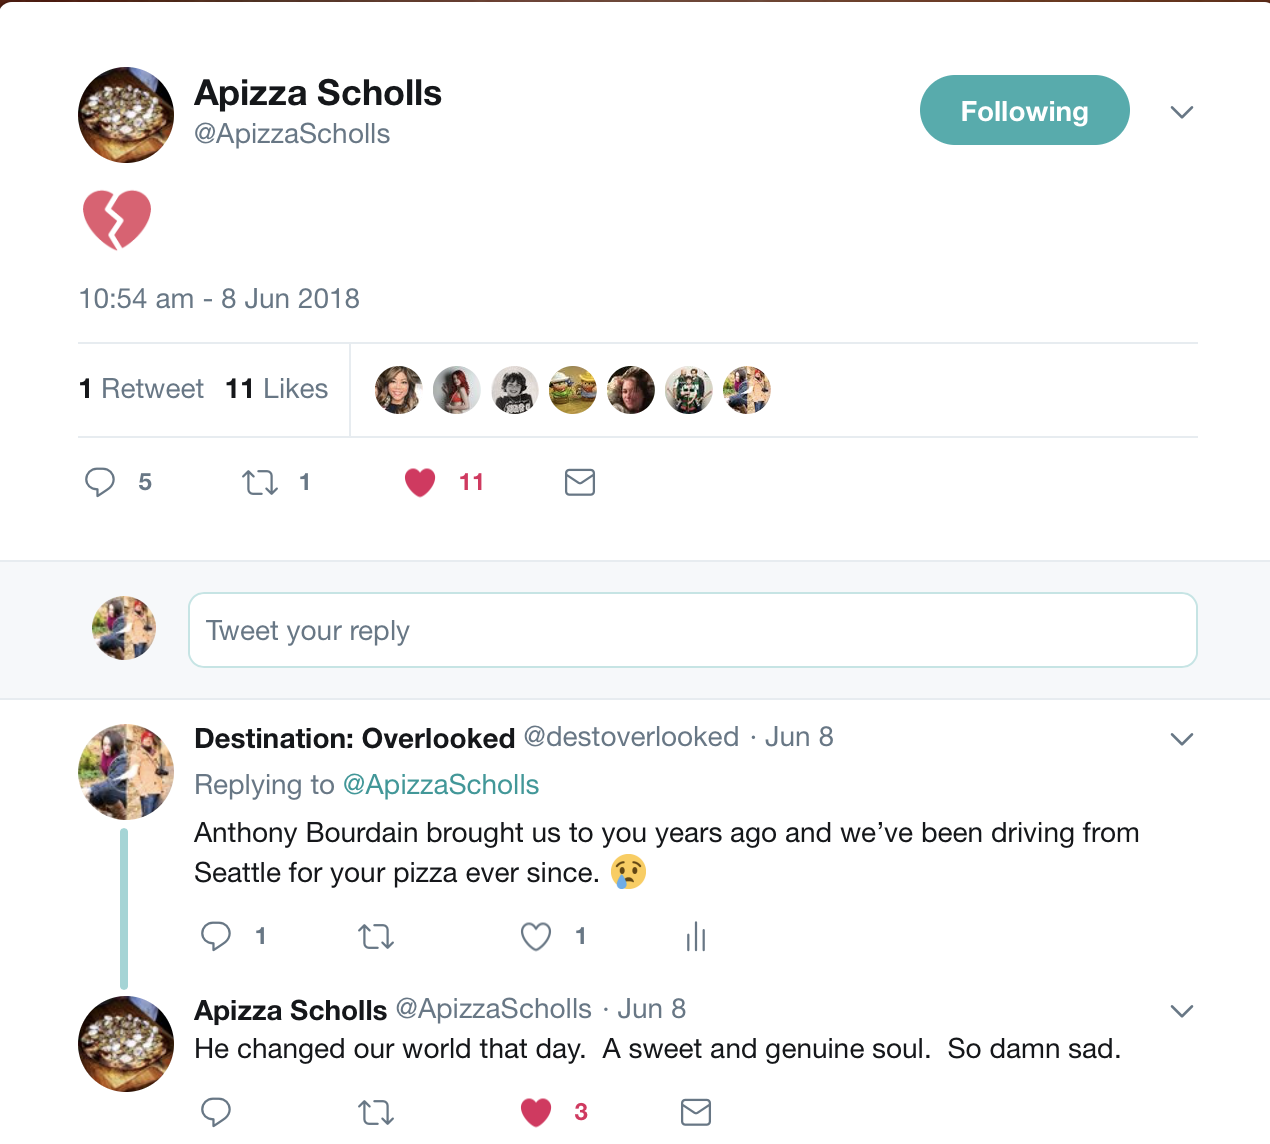 Apizza Scholls Anthony Bourdain Tweet